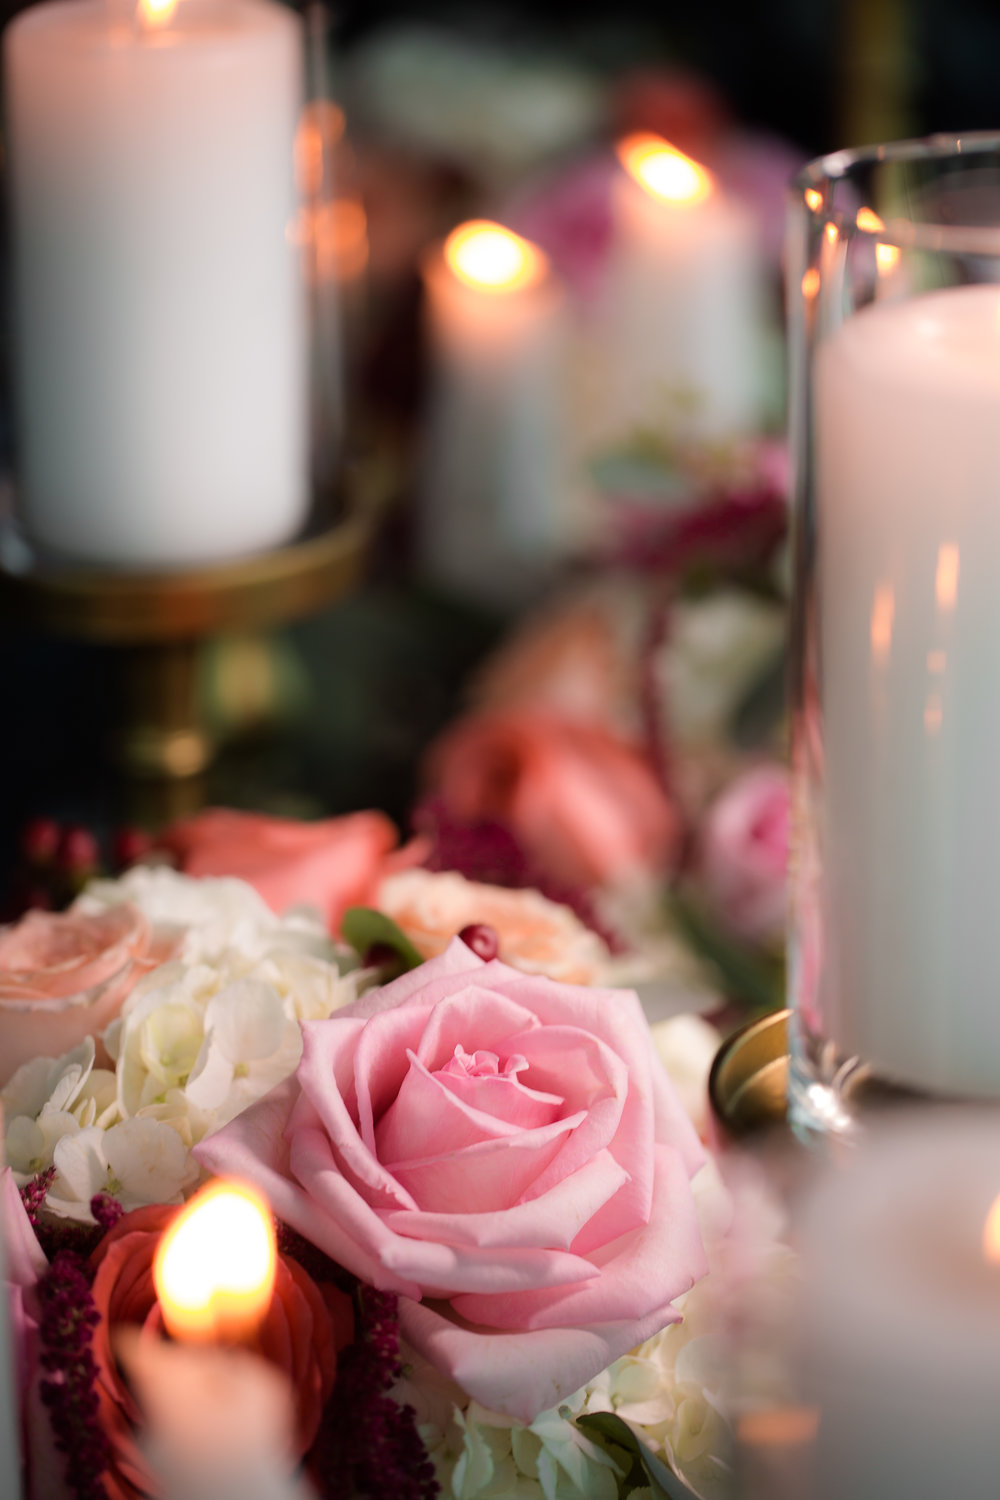 Pink and white rustic and romantic centerpieces with candles.      Styled Wedding Shoot inspired by French Blue.    Las Vegas Wedding Planner  Andrea Eppolito .  Photography by   Rebecca Marie  .  Floral and Decor by   By Dzign  .  Beauty by   Amelia C & Co  .  Shot at Rivea at The Delano.